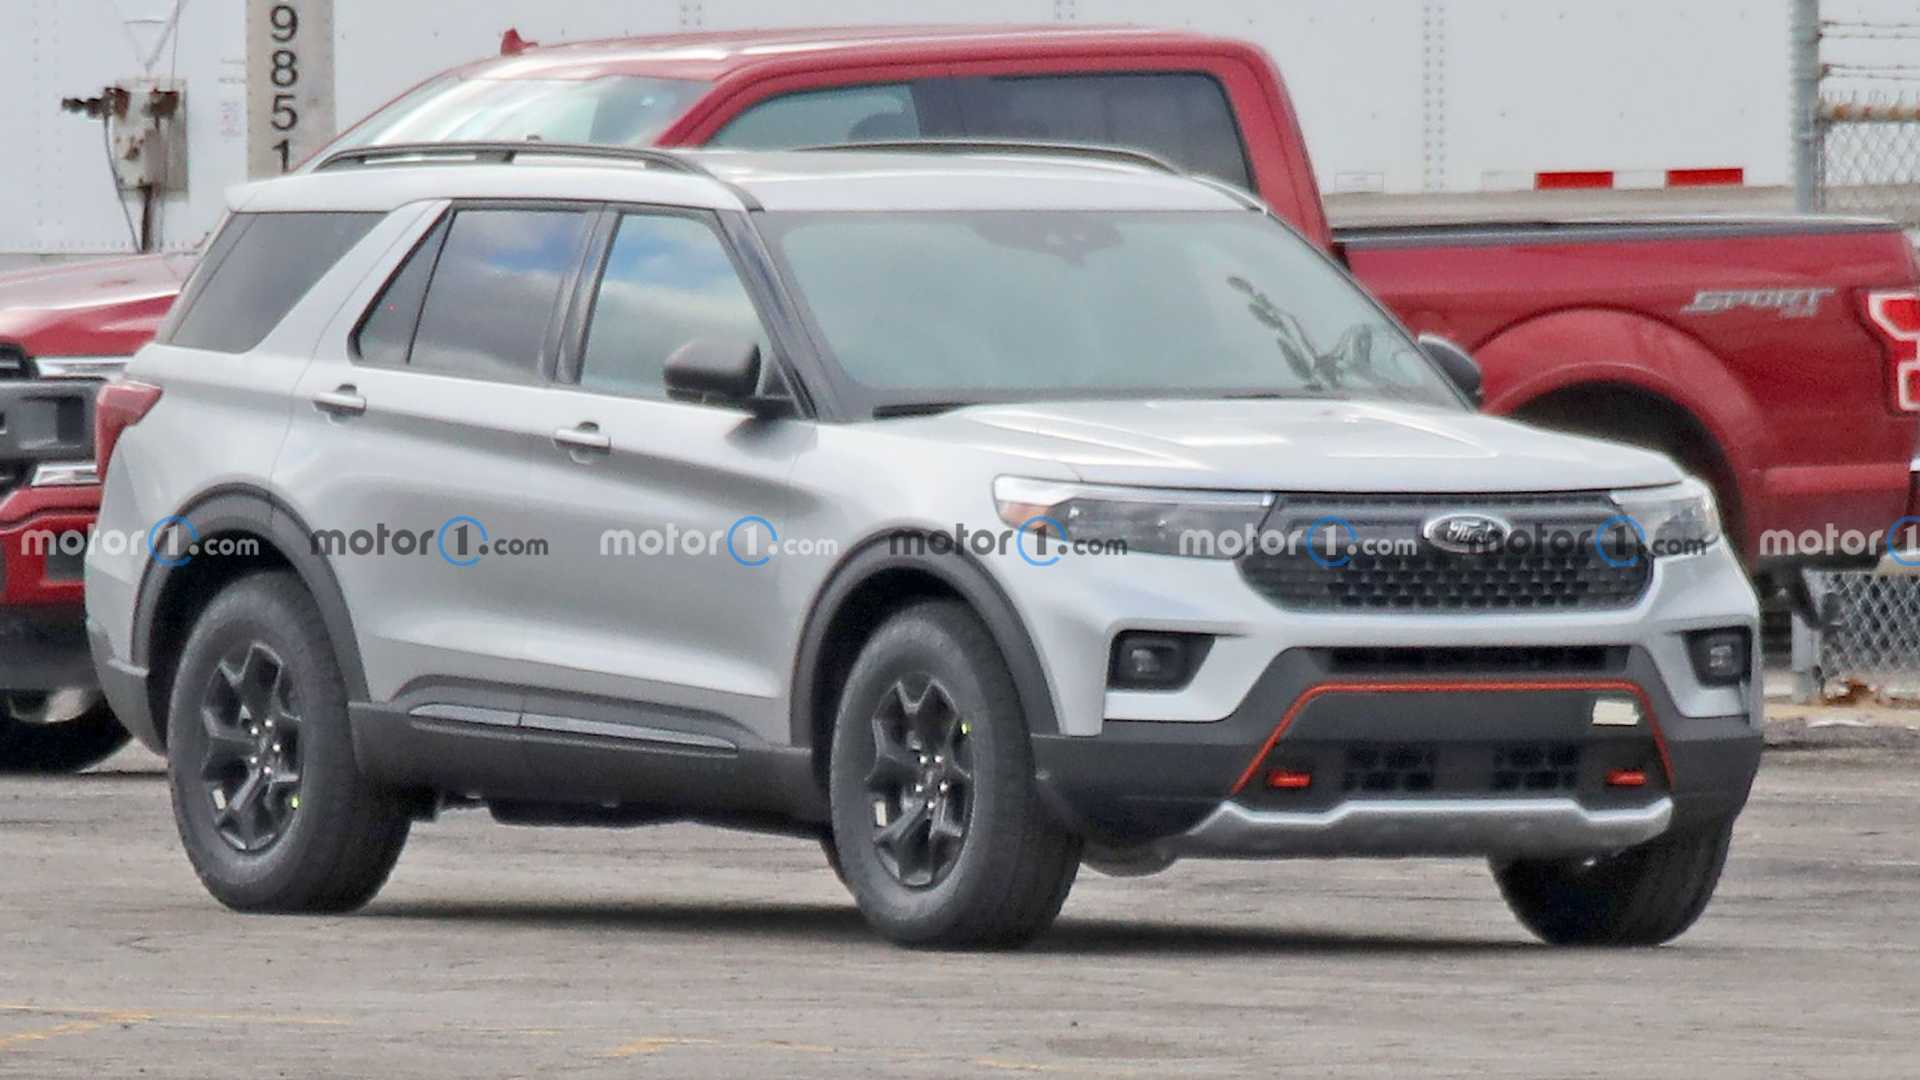 2022 Ford Explorer Timberline Caught Fully Exposed In New Spy Shots